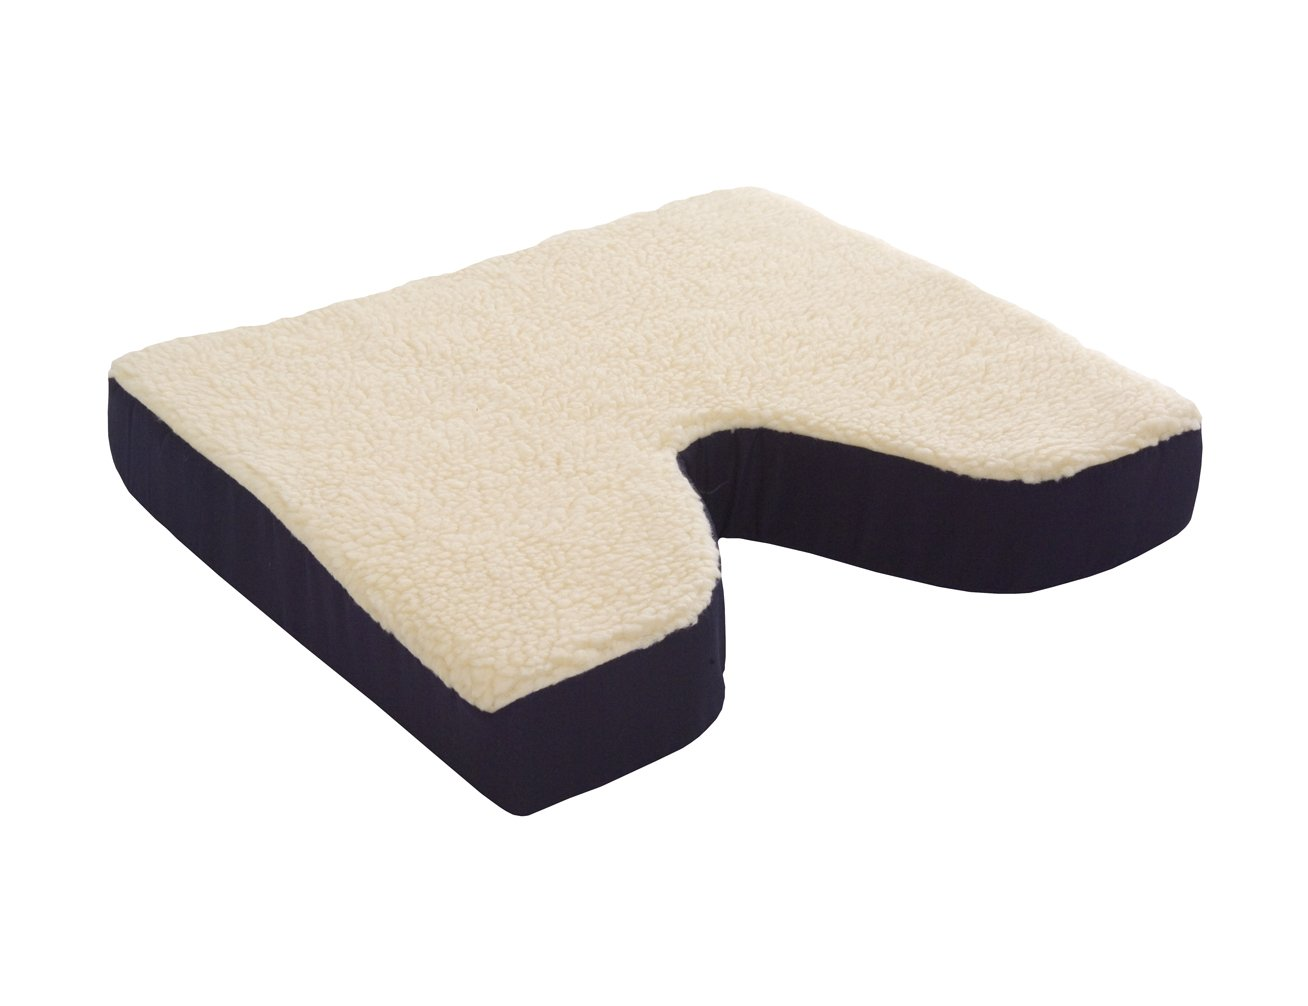 Essential Medical Supply Fleece Covered Coccyx Cushion, 16 Inches X 16 Inches X 3 Inches